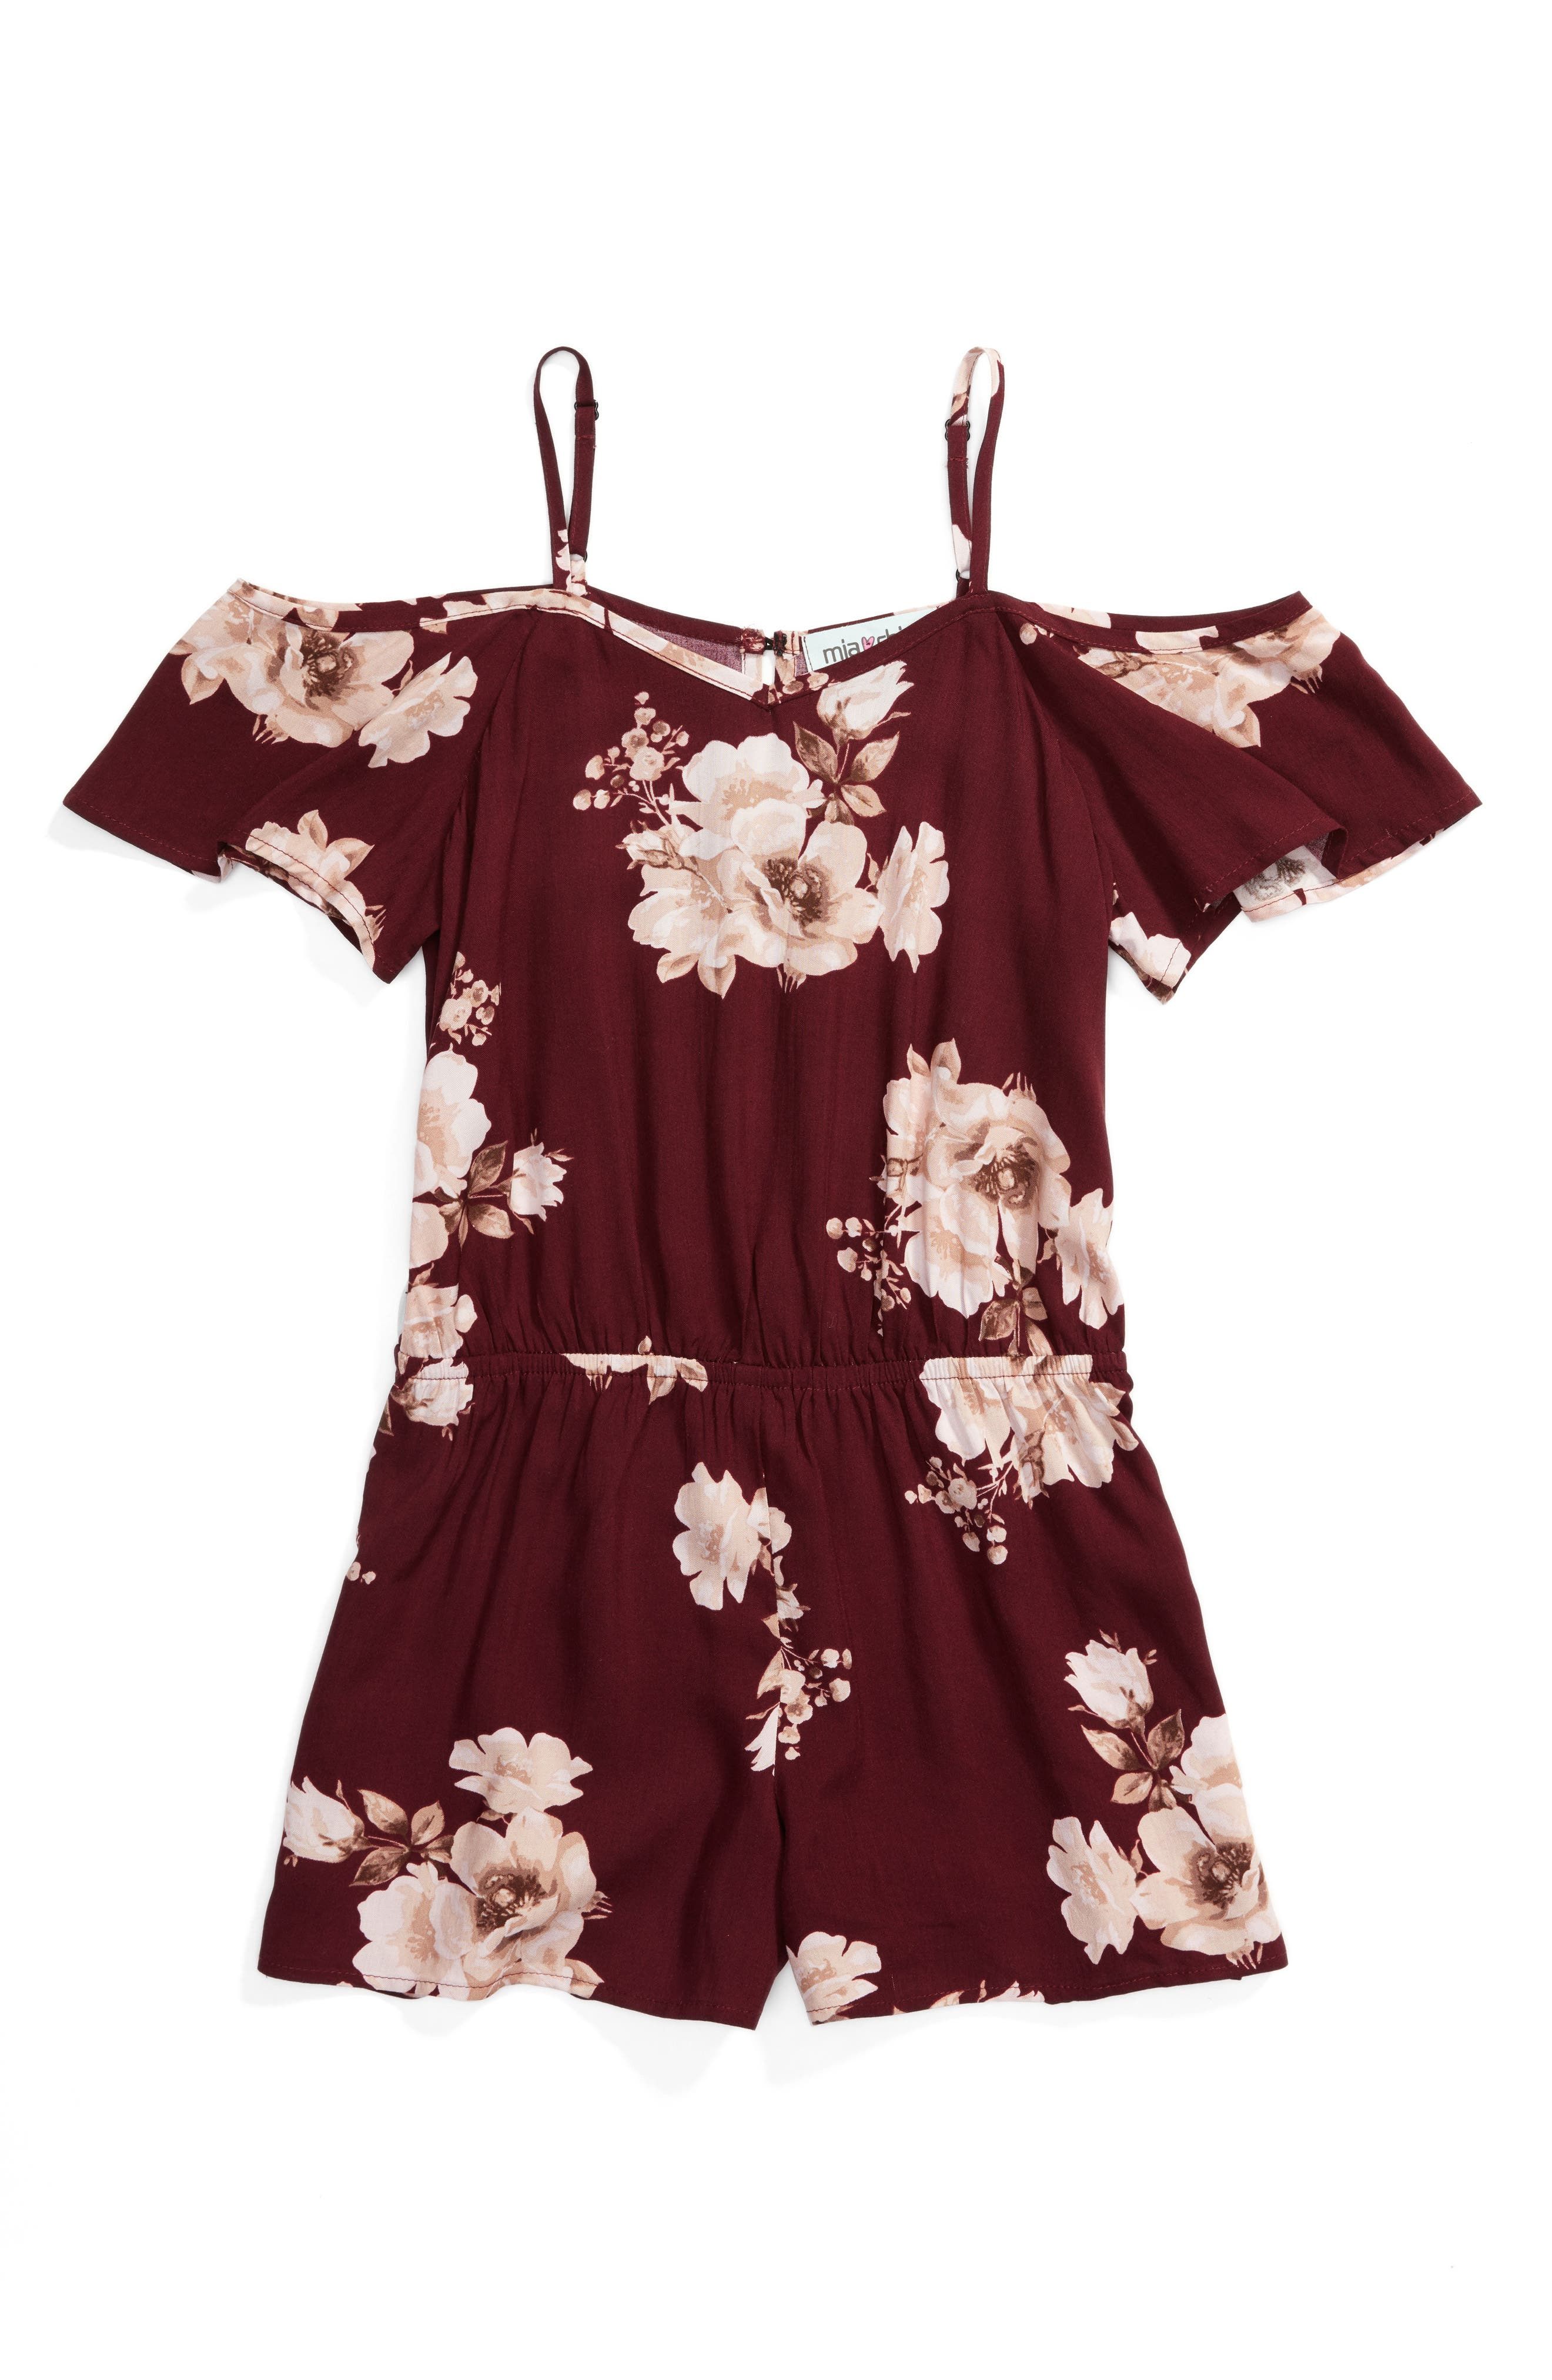 Alternate Image 1 Selected - Mia Chica Cold Shoulder Romper (Big Girls)